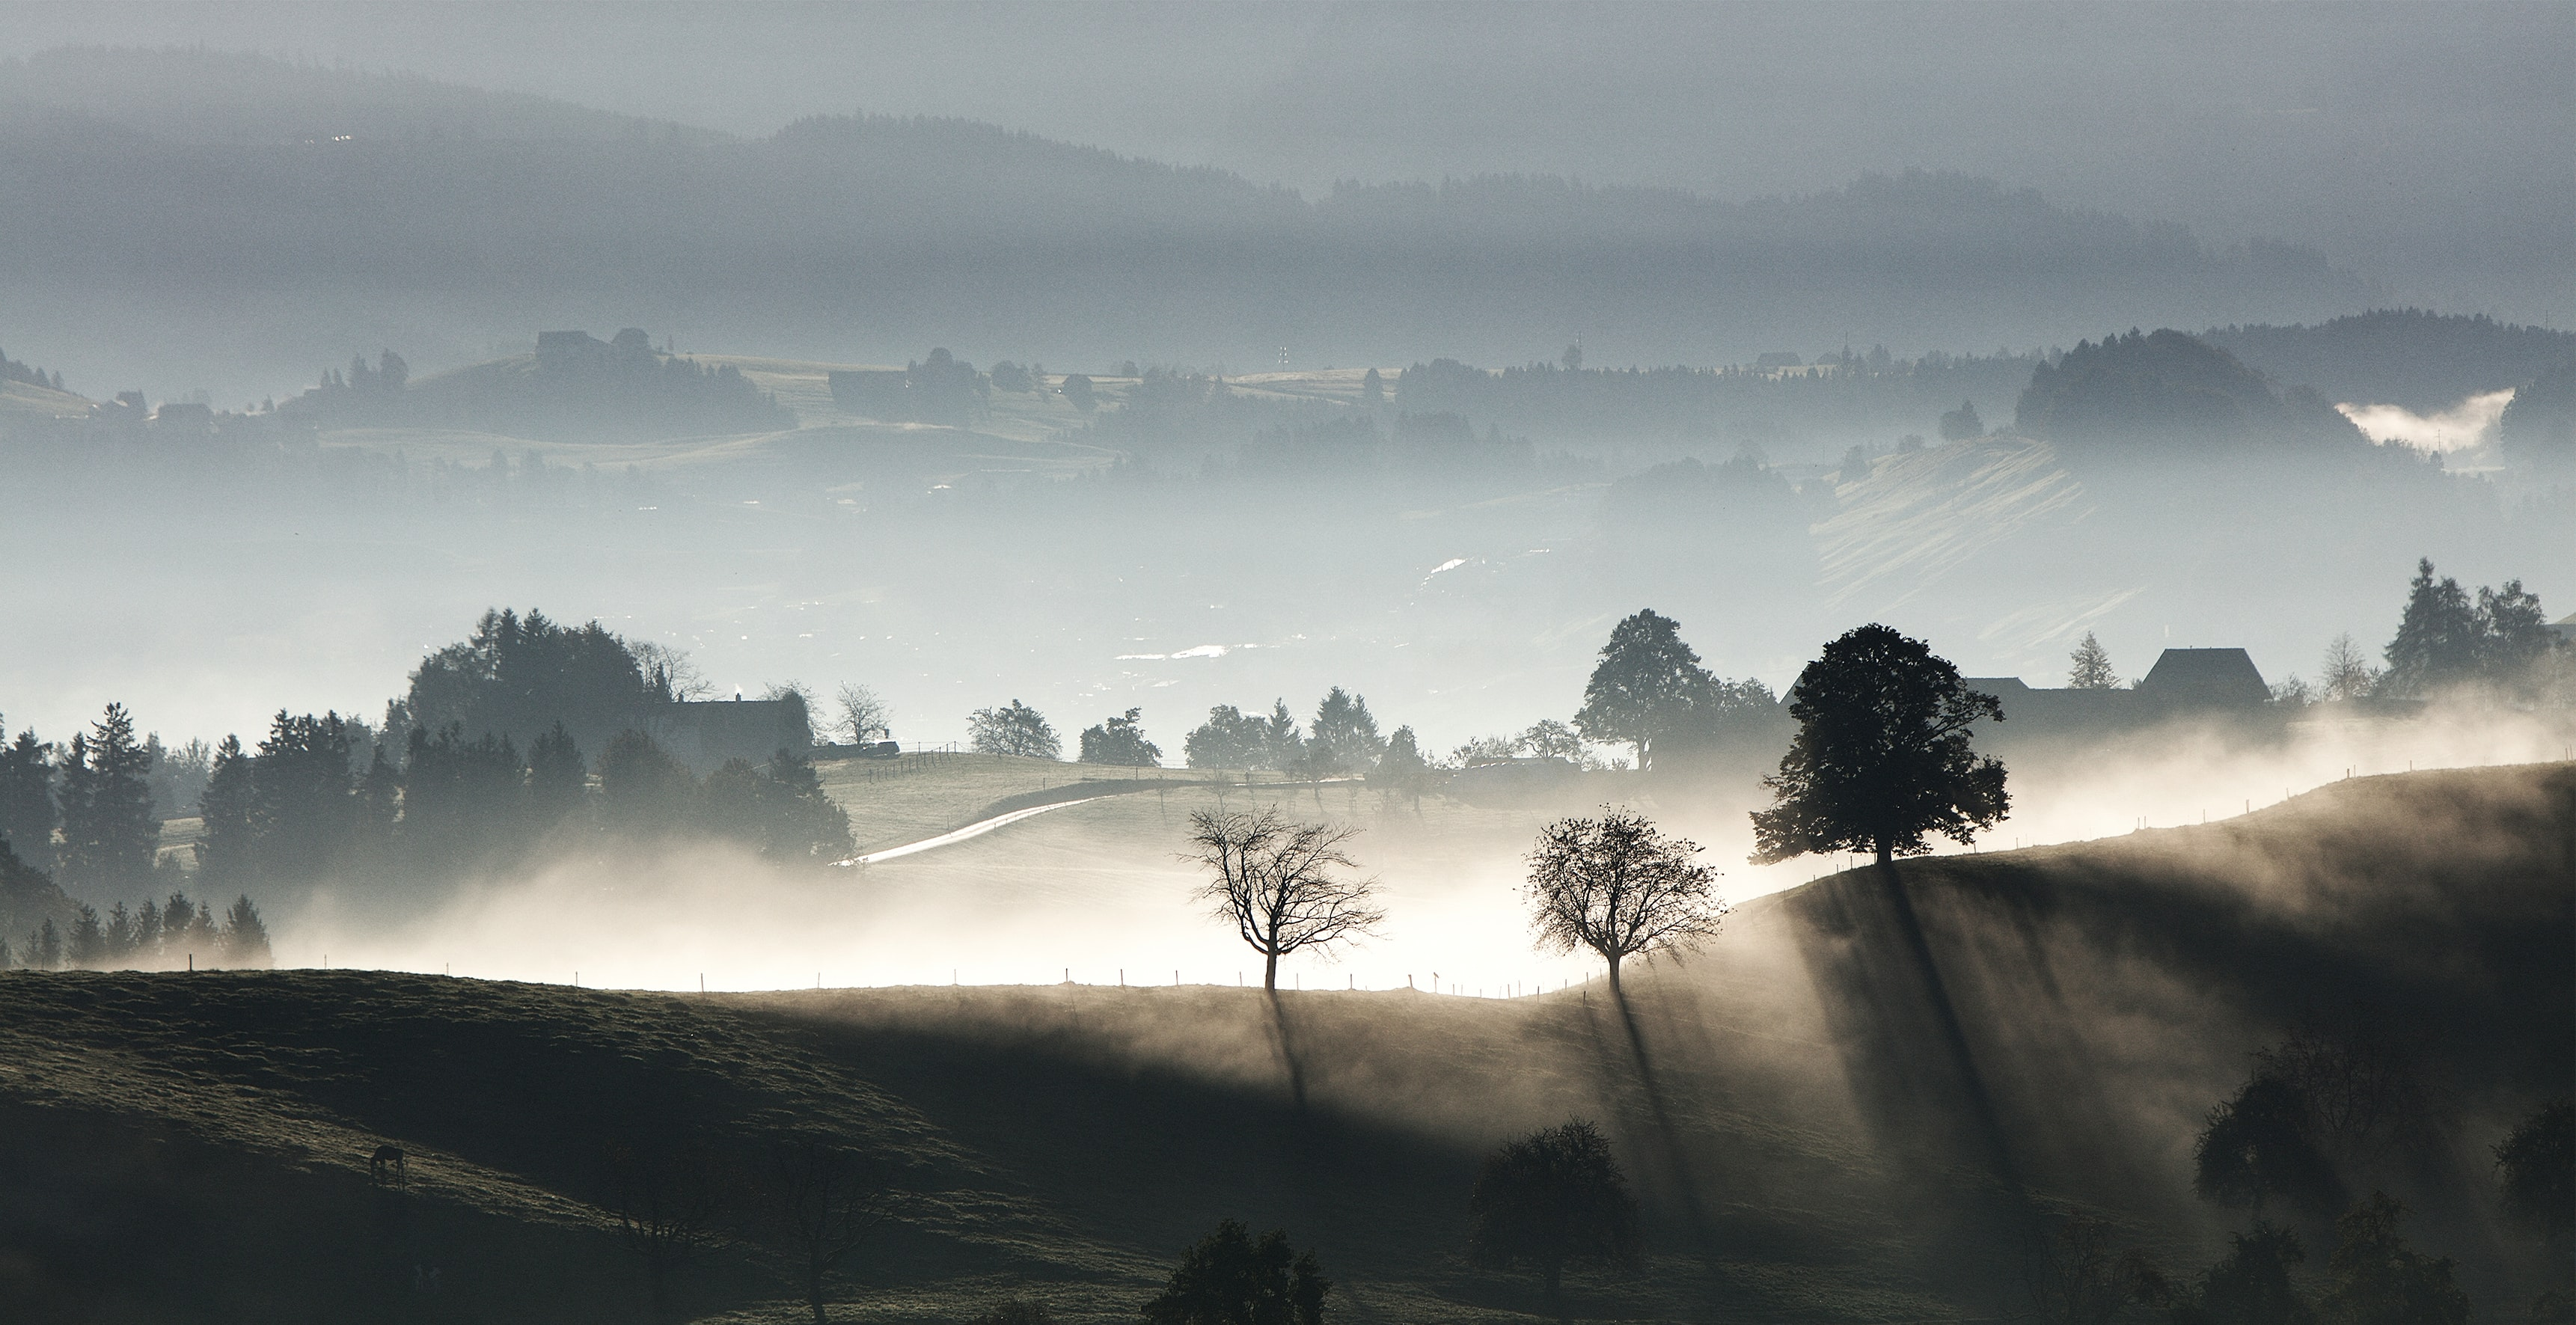 Sun peaks through mist in foggy farmland in Hirzel